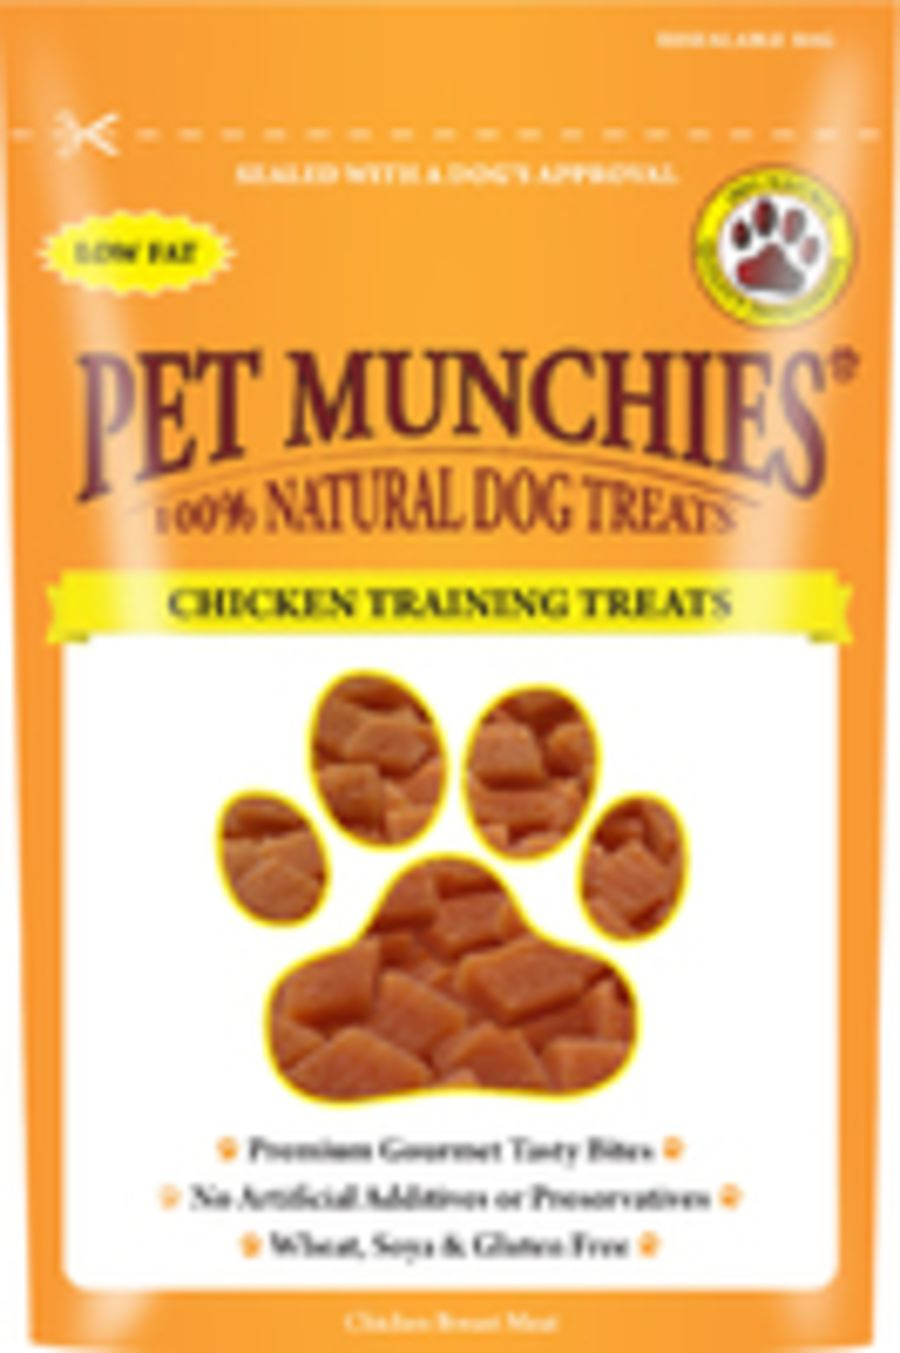 Chicken training Treat 50g